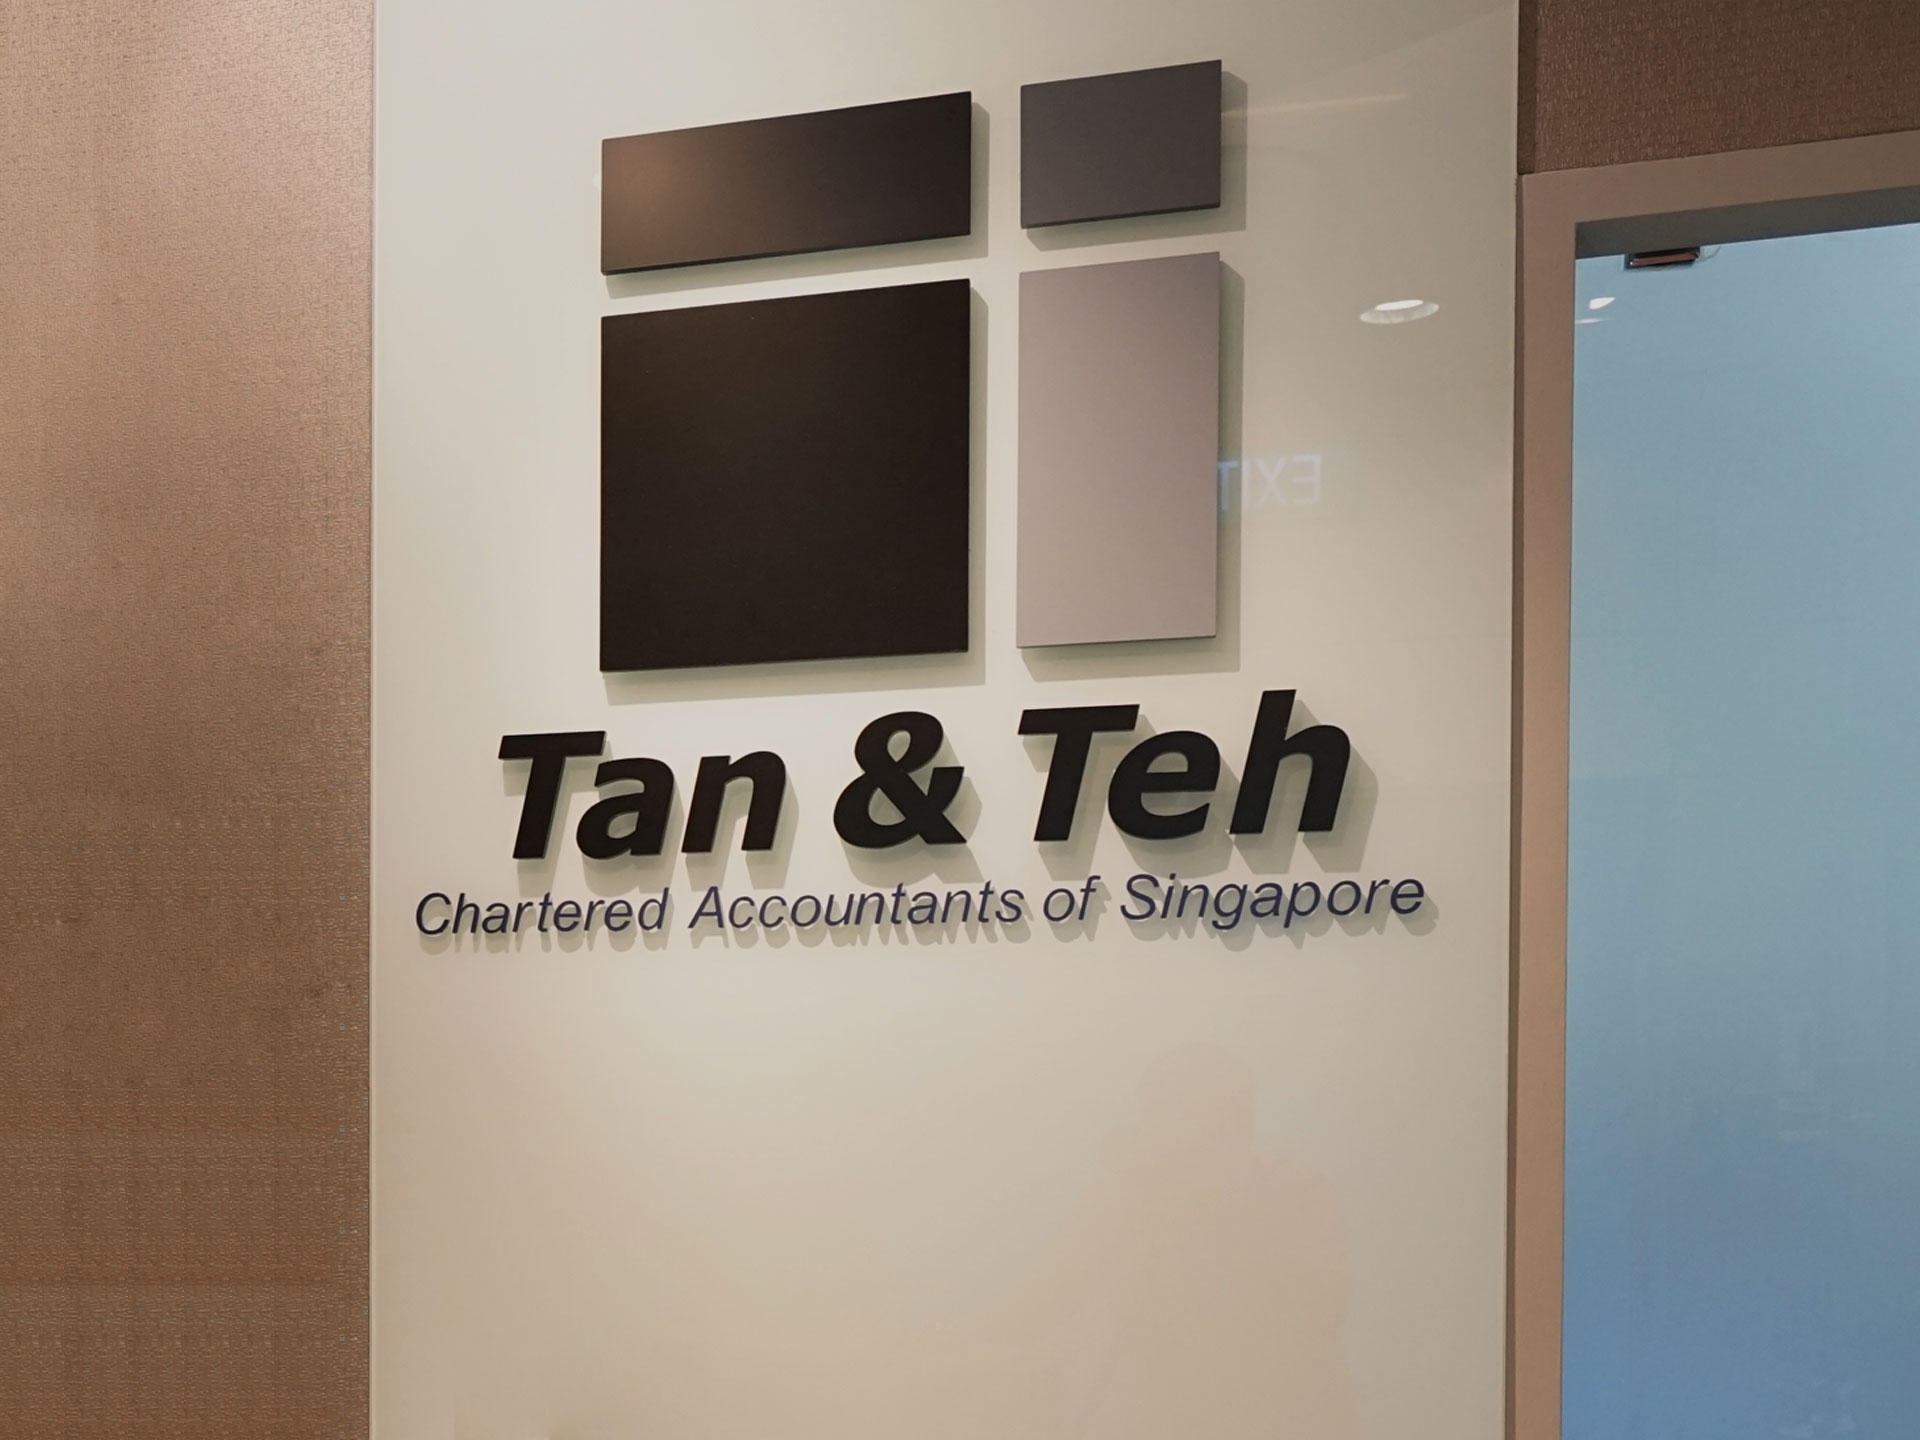 https://tanandteh.com.sg/sites/default/files/revslider/image/slide-tat-lobby-signage.jpg